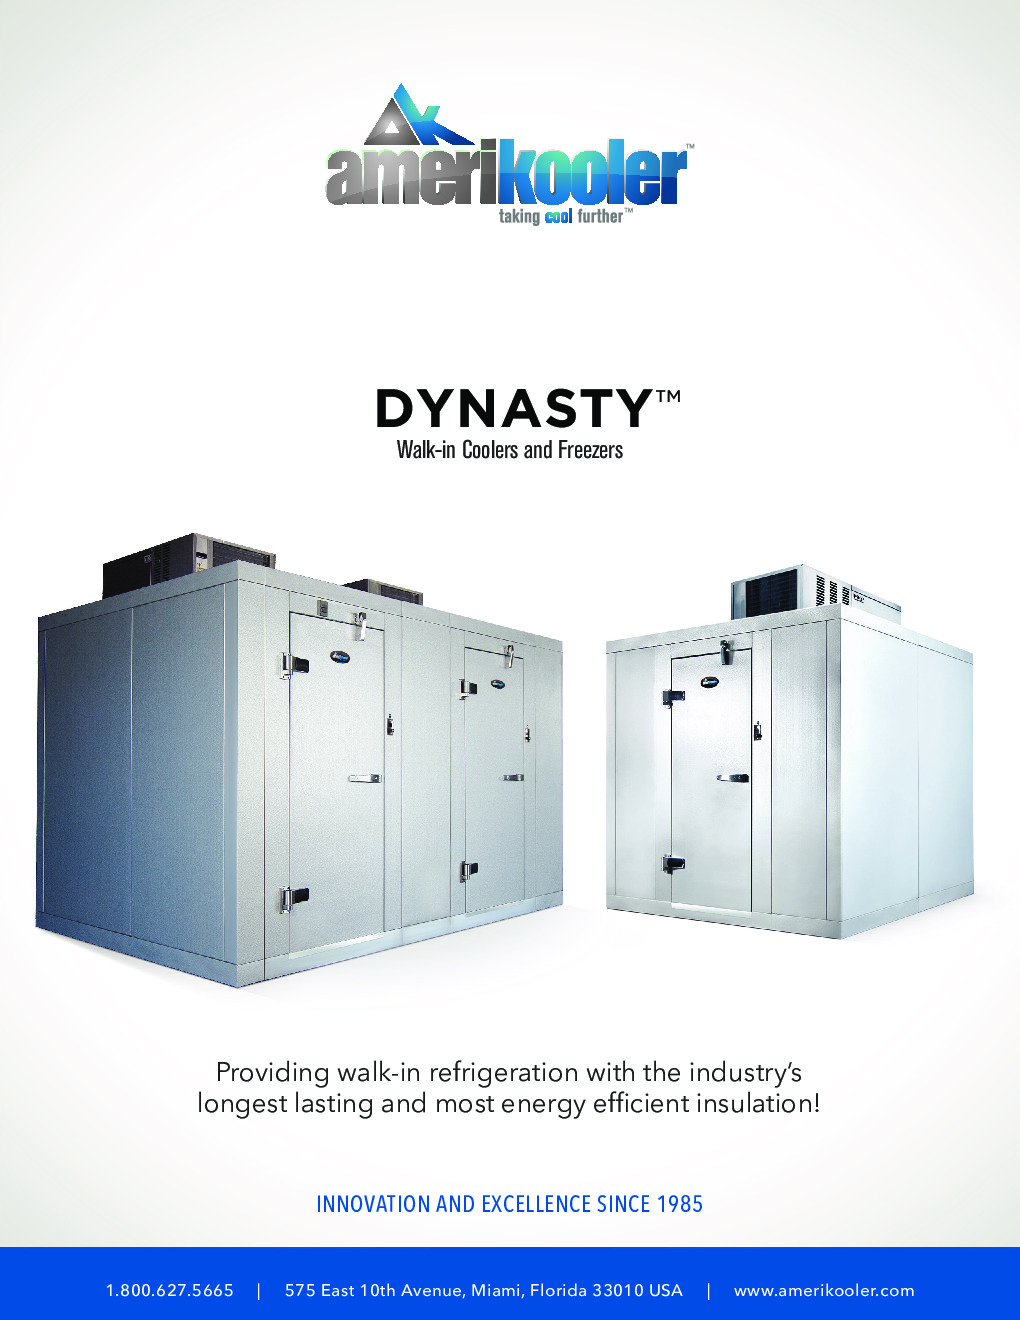 AmeriKooler DW091577F-7/8-SC 9' X 15' Walk-In Cooler, 8' L Cooler with Floor and 7' L Freezer, Self Contained